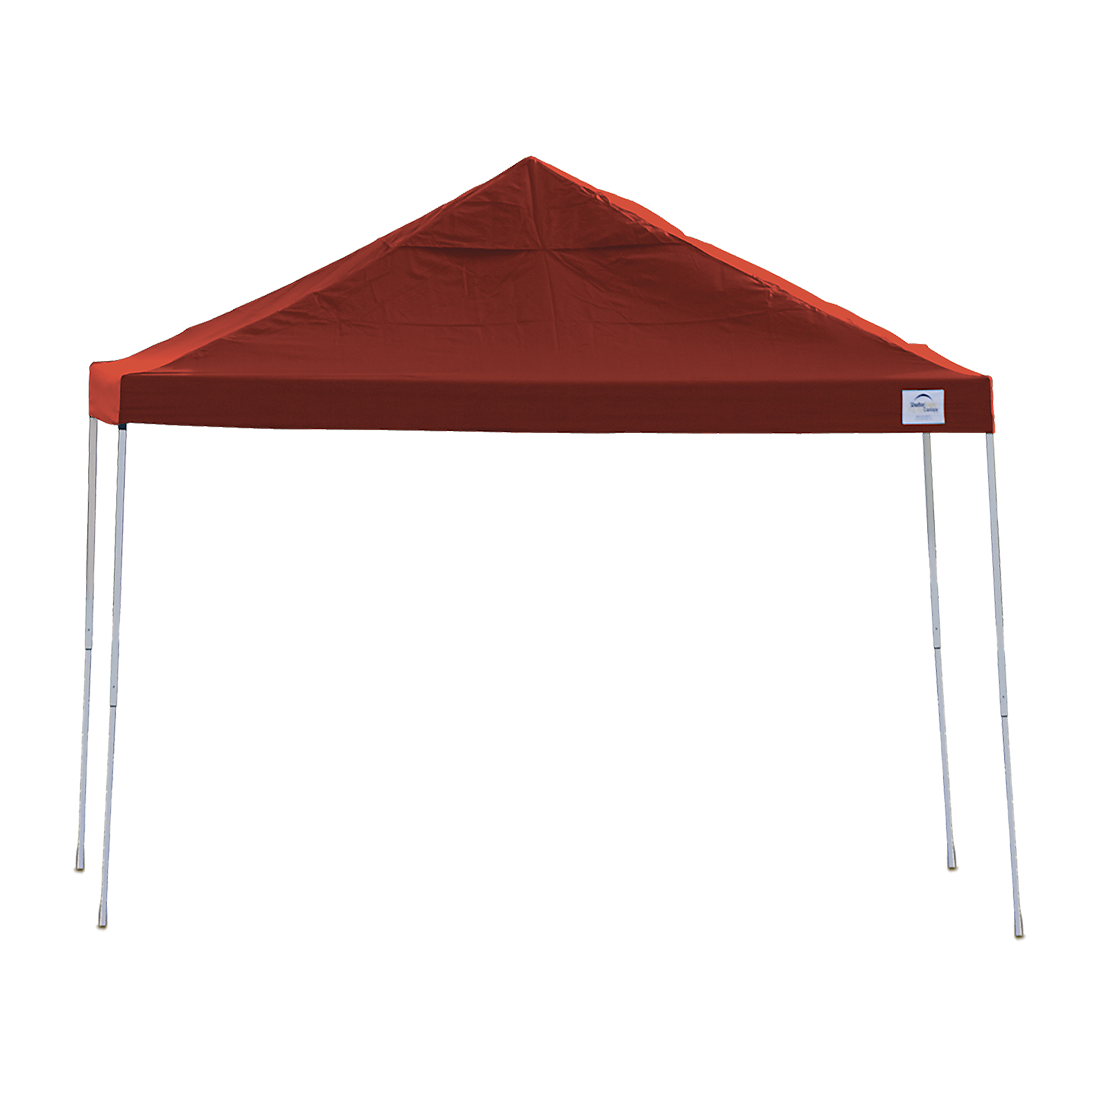 Pop-Up Canopy HD - Straight Leg 12 x 12 ft.